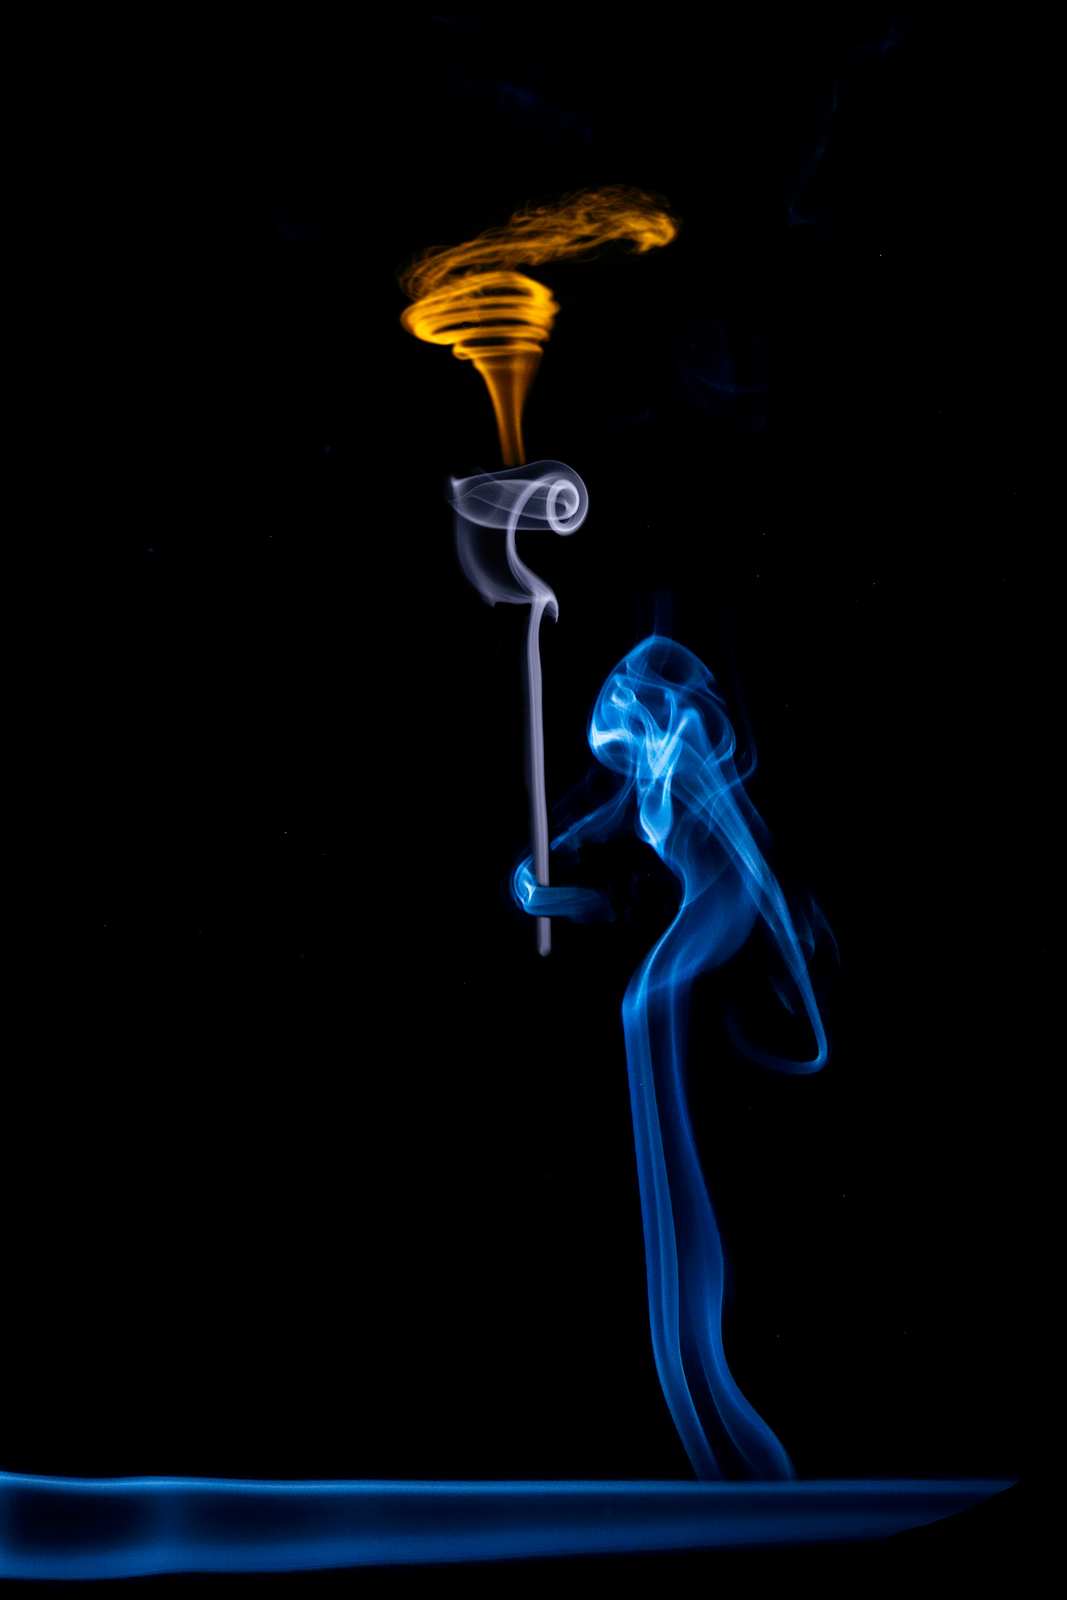 blue,composite,ghost,hooded,mysterious,scary,skeletal,skeleton,smoke,smoke picture,still,still life,torch,vertical, photo